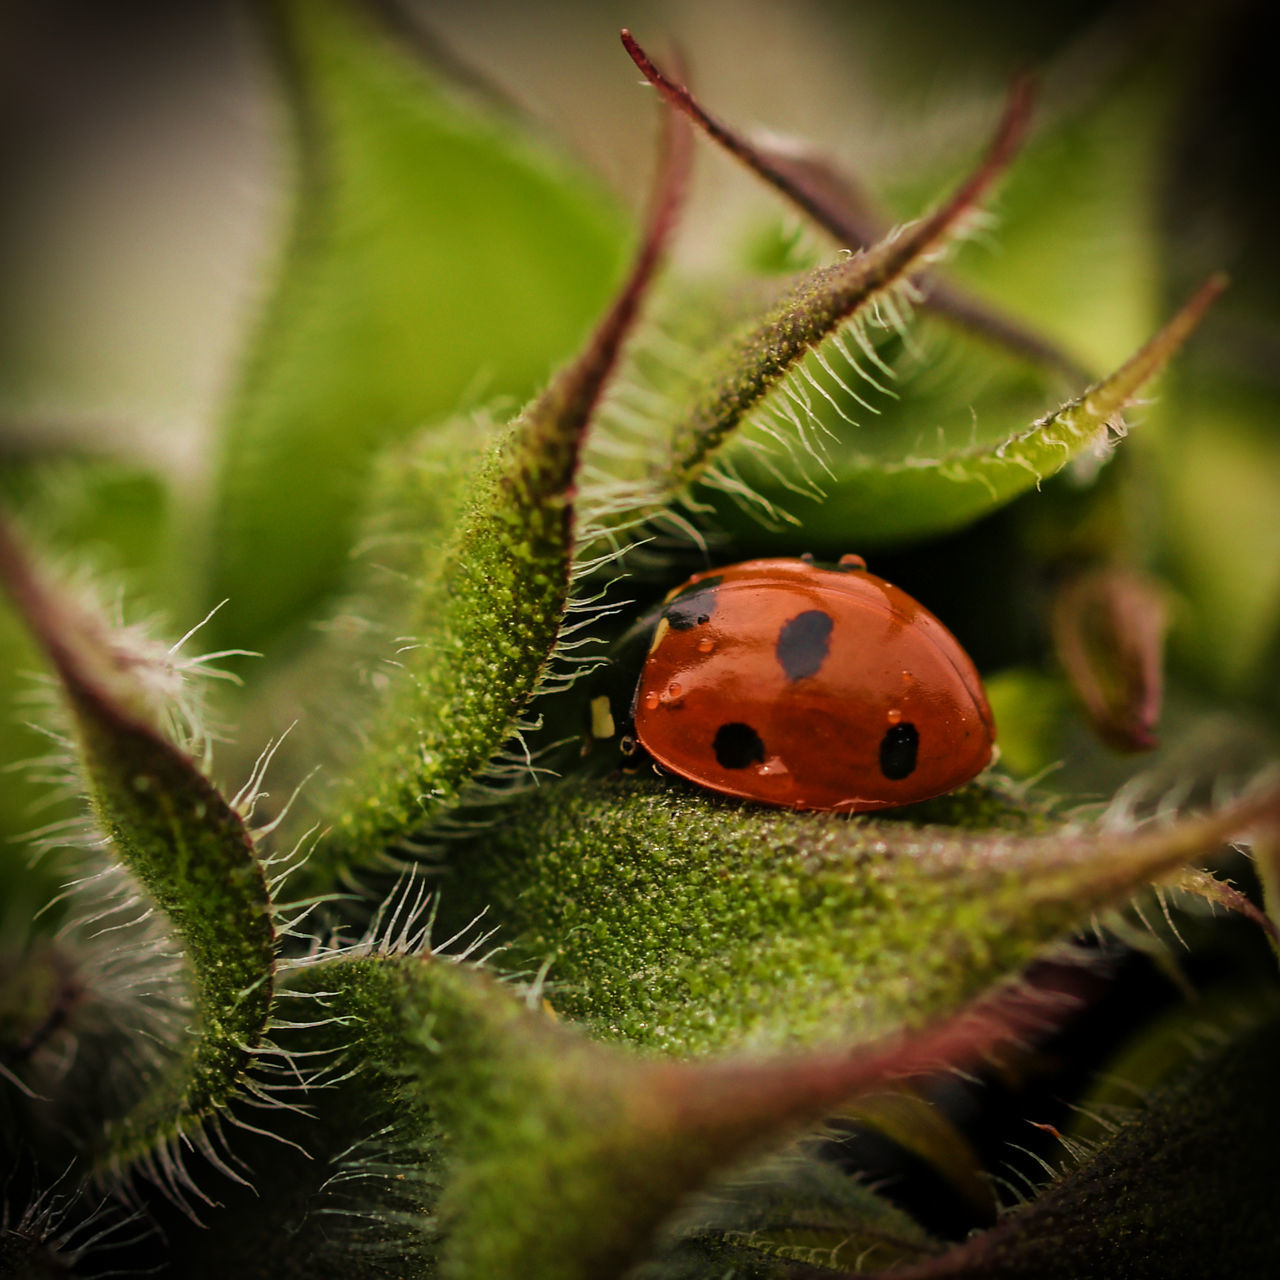 Lady bug nestled in spiky leaves Animals In The Wild Beetle England, UK Green Green Color Hairy  Insect Lady Bird🐞 Ladybug Leaf Nature No People One Animal Outdoors Spiky Spotted